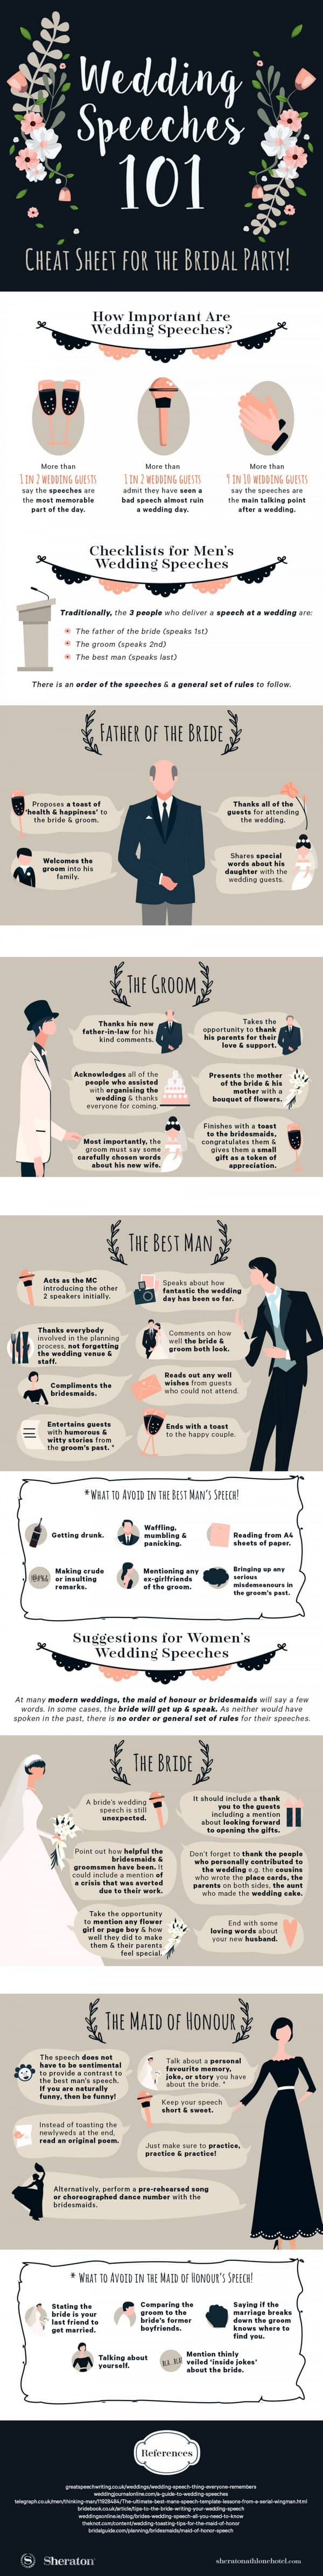 The Ultimate Cheat Sheet For A Great Wedding Speech Daily Infographic